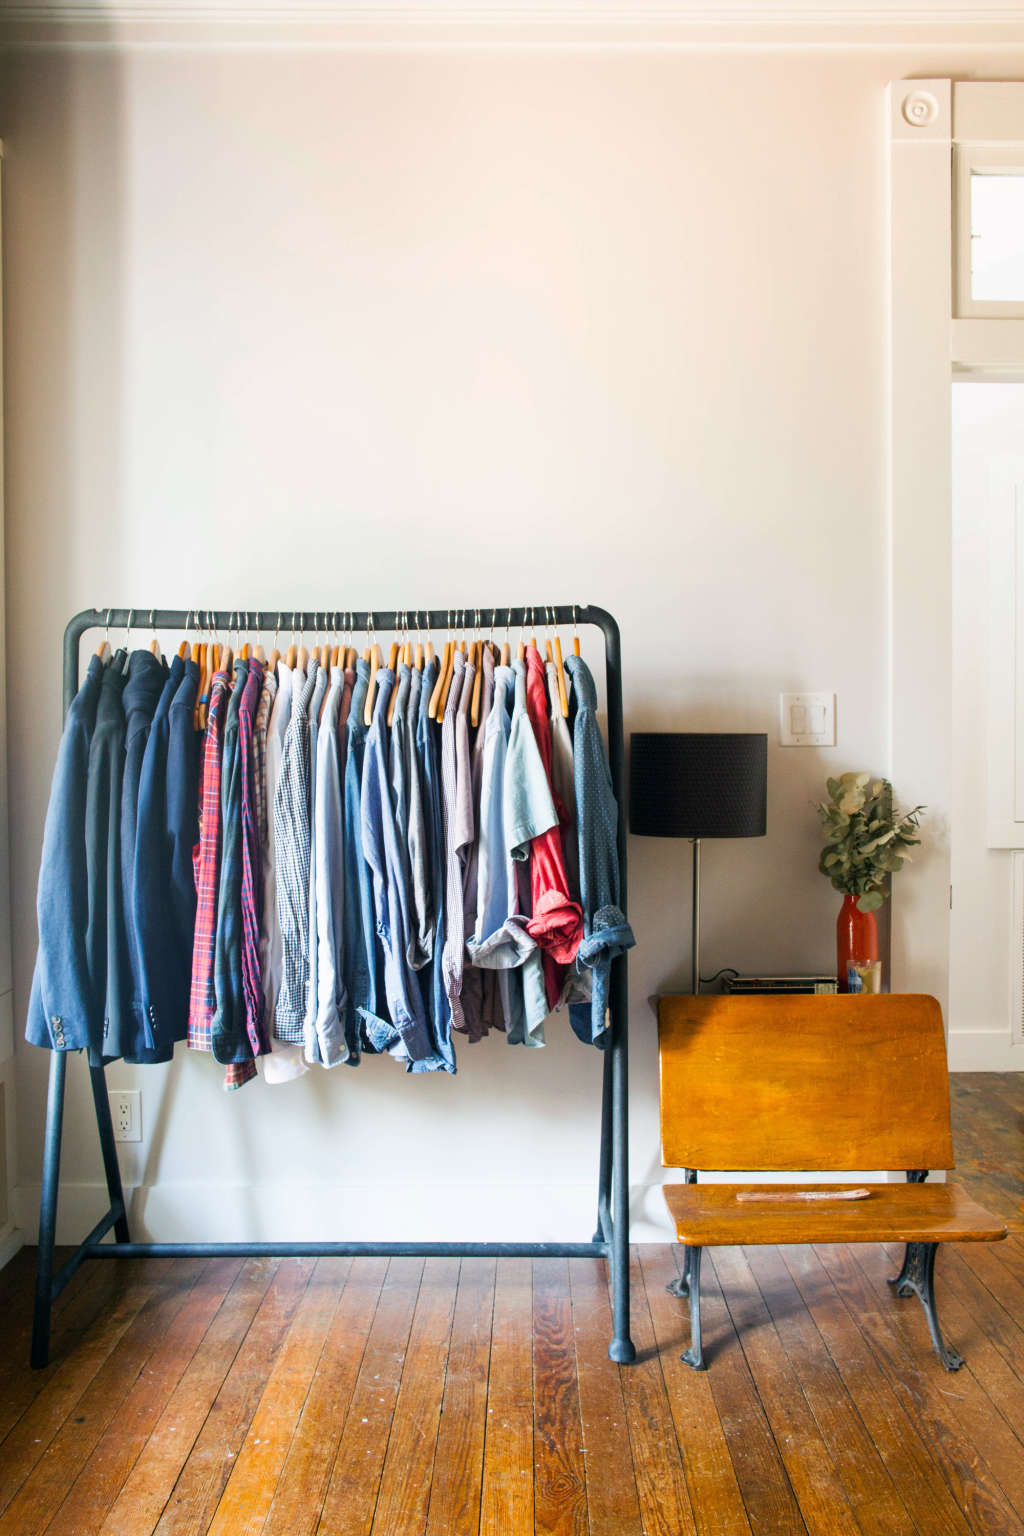 The Best Freestanding Wardrobe Clothes Racks Apartment Therapy Standing Hanger Multifunction Stand